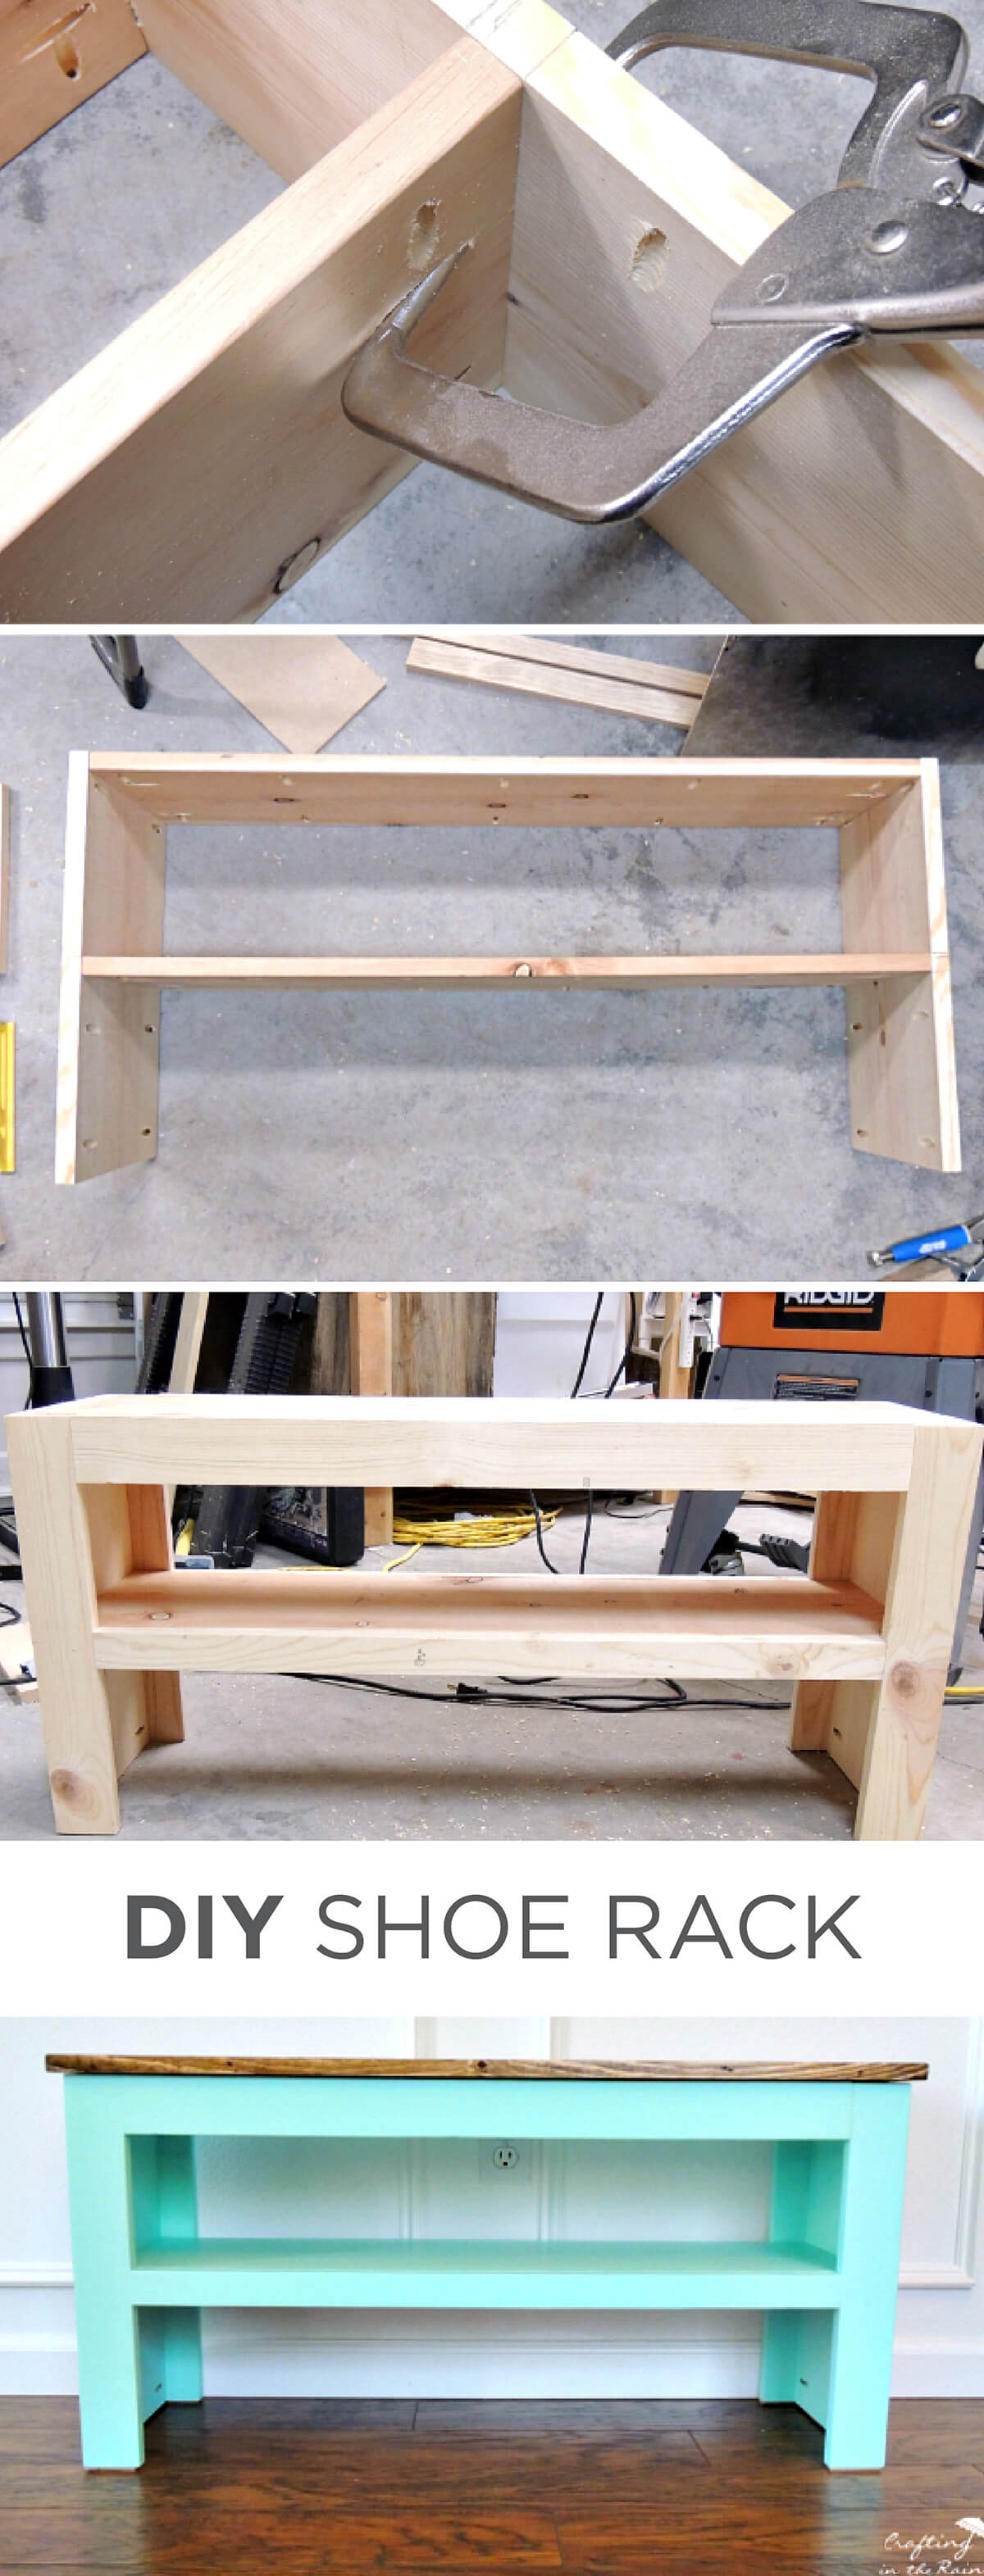 DIY Entryway Shoe Rach and Bench